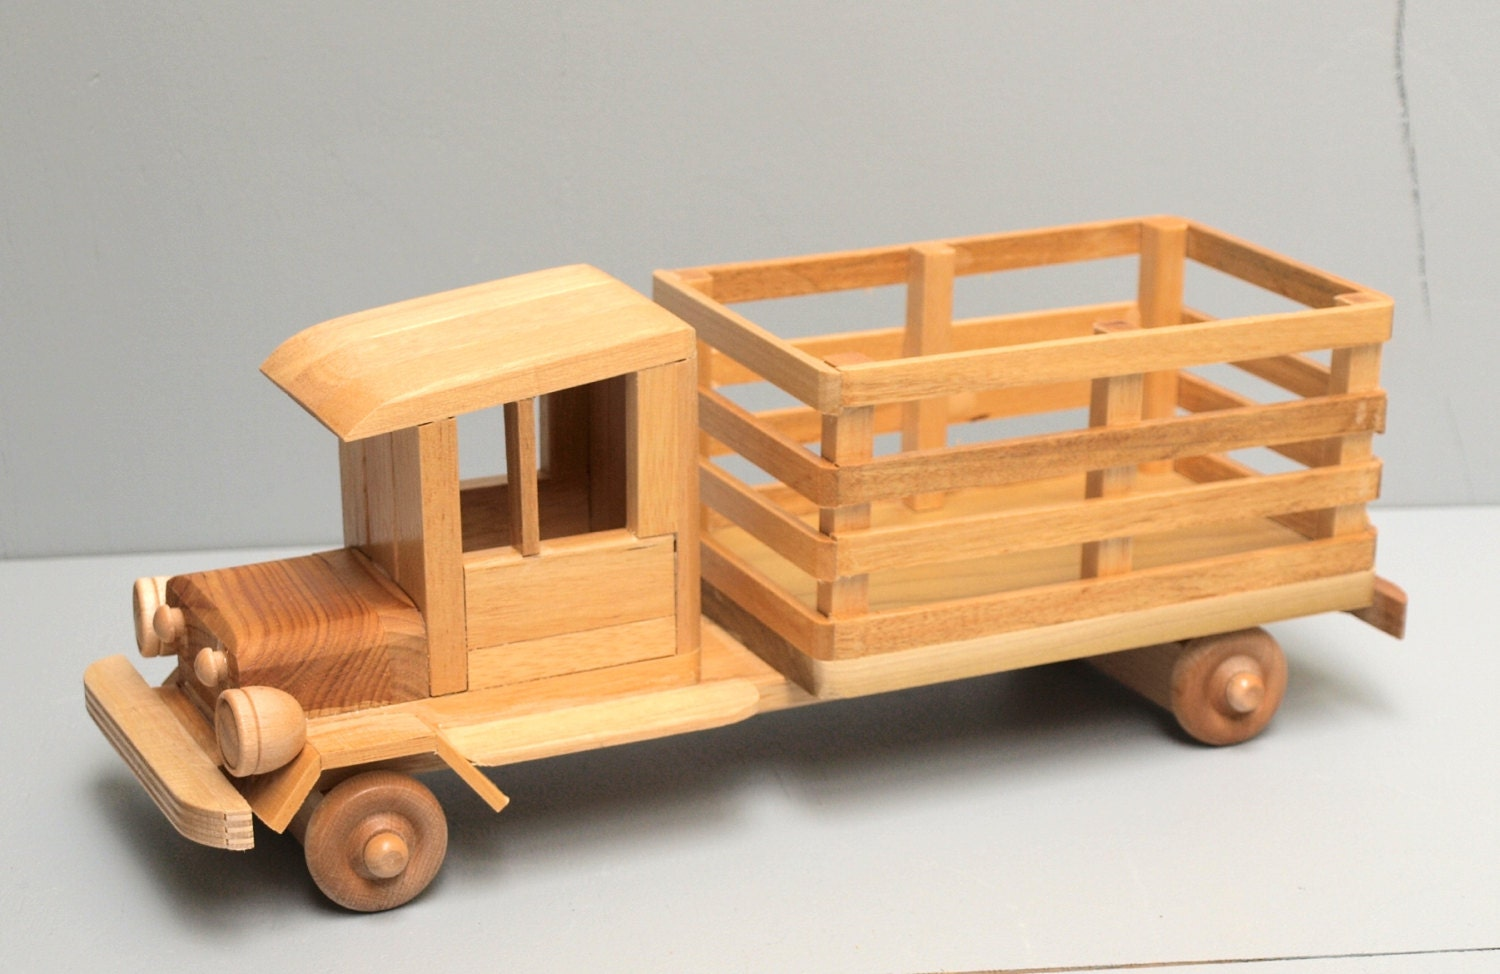 Toys Are Us Wooden Toys : Wood farm truck eco friendly wooden toy car for kids organic